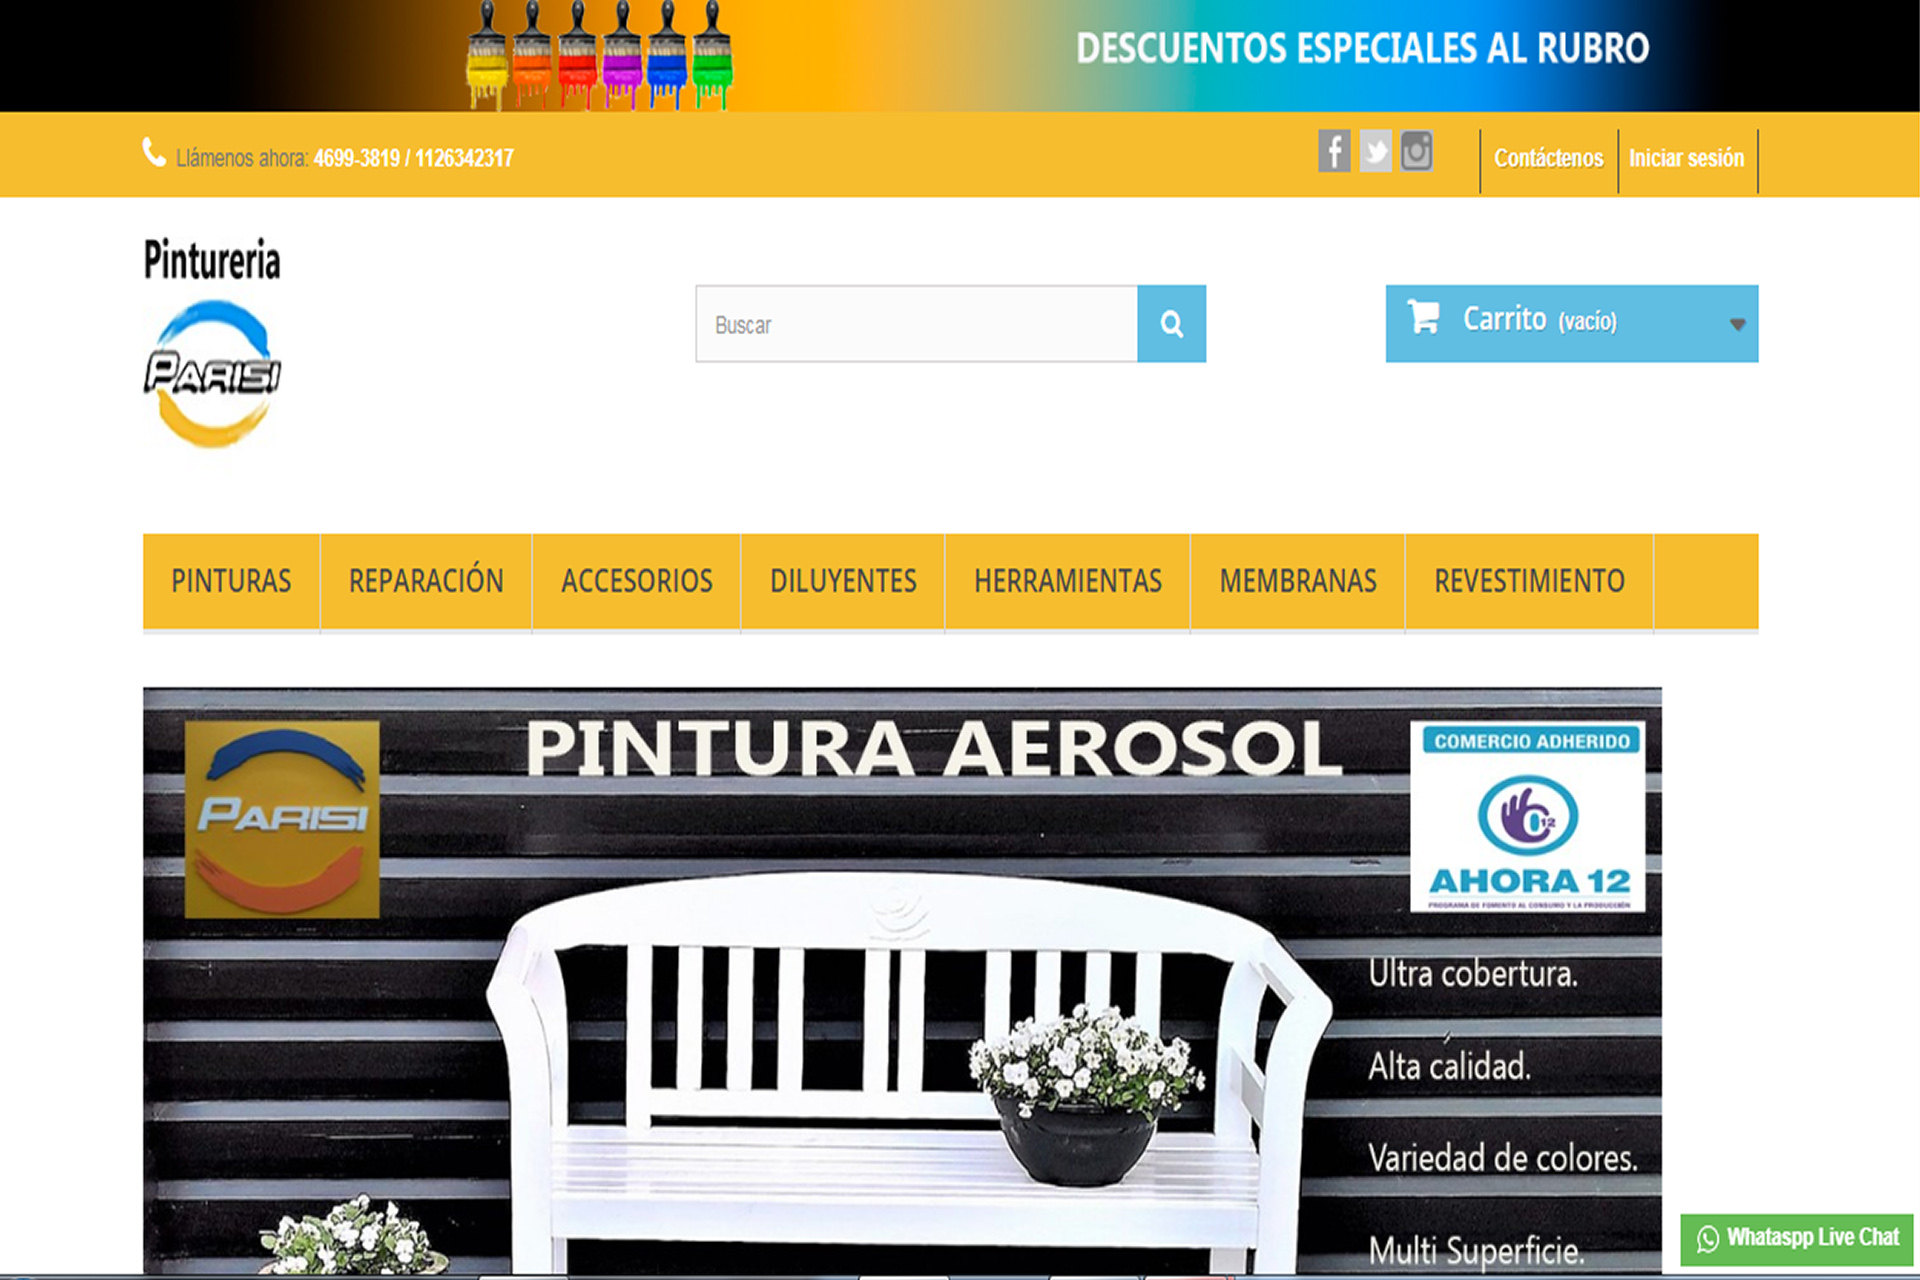 Website Pintureria Parisi